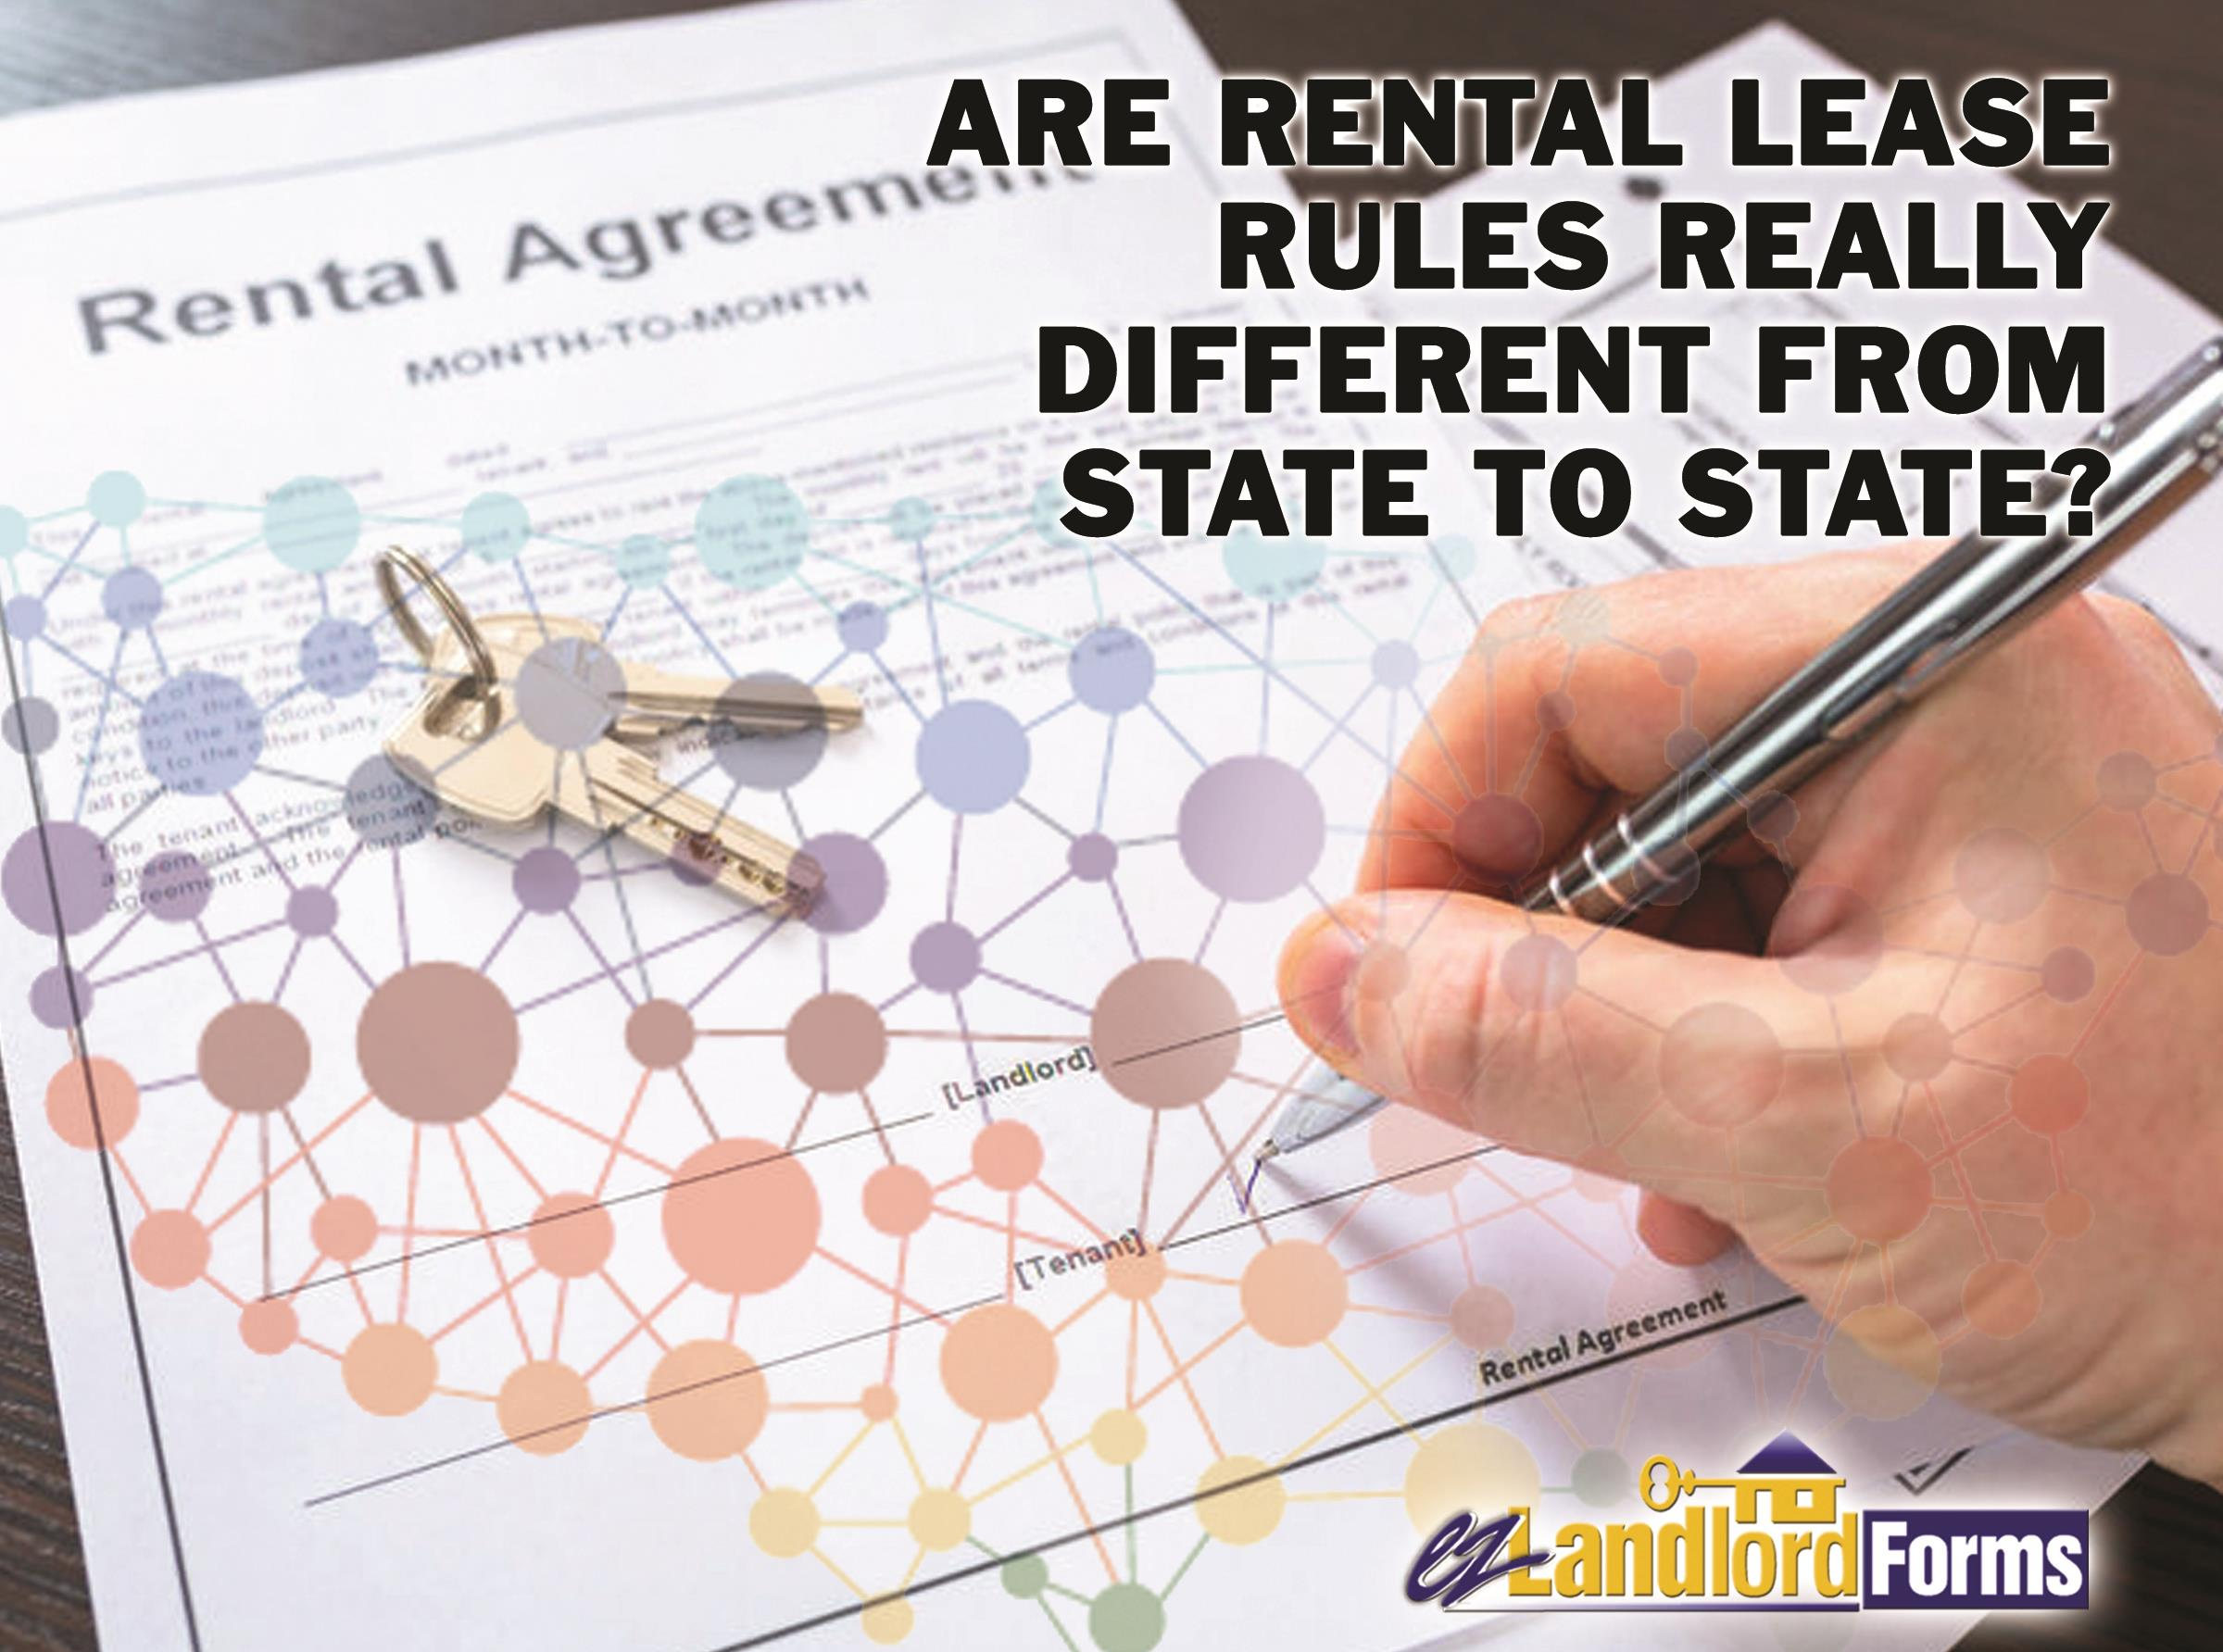 Are Rental Lease Rules Really Different From State To State